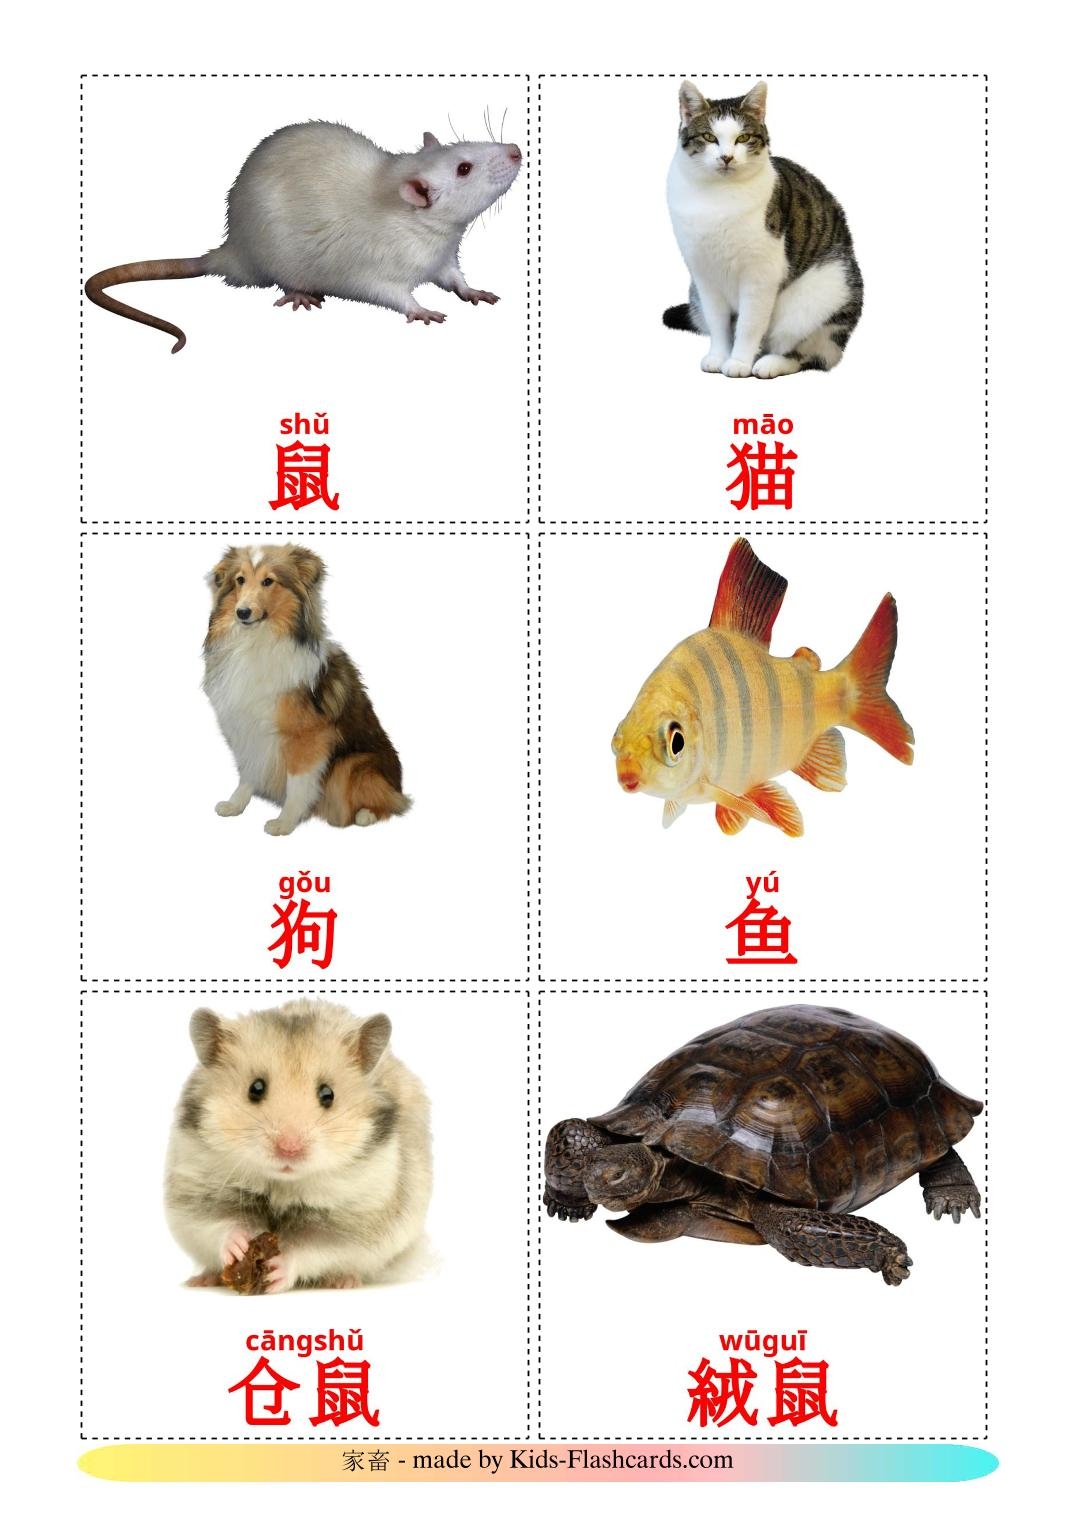 Domestic animals - 10 Free Printable chinese(Simplified) Flashcards